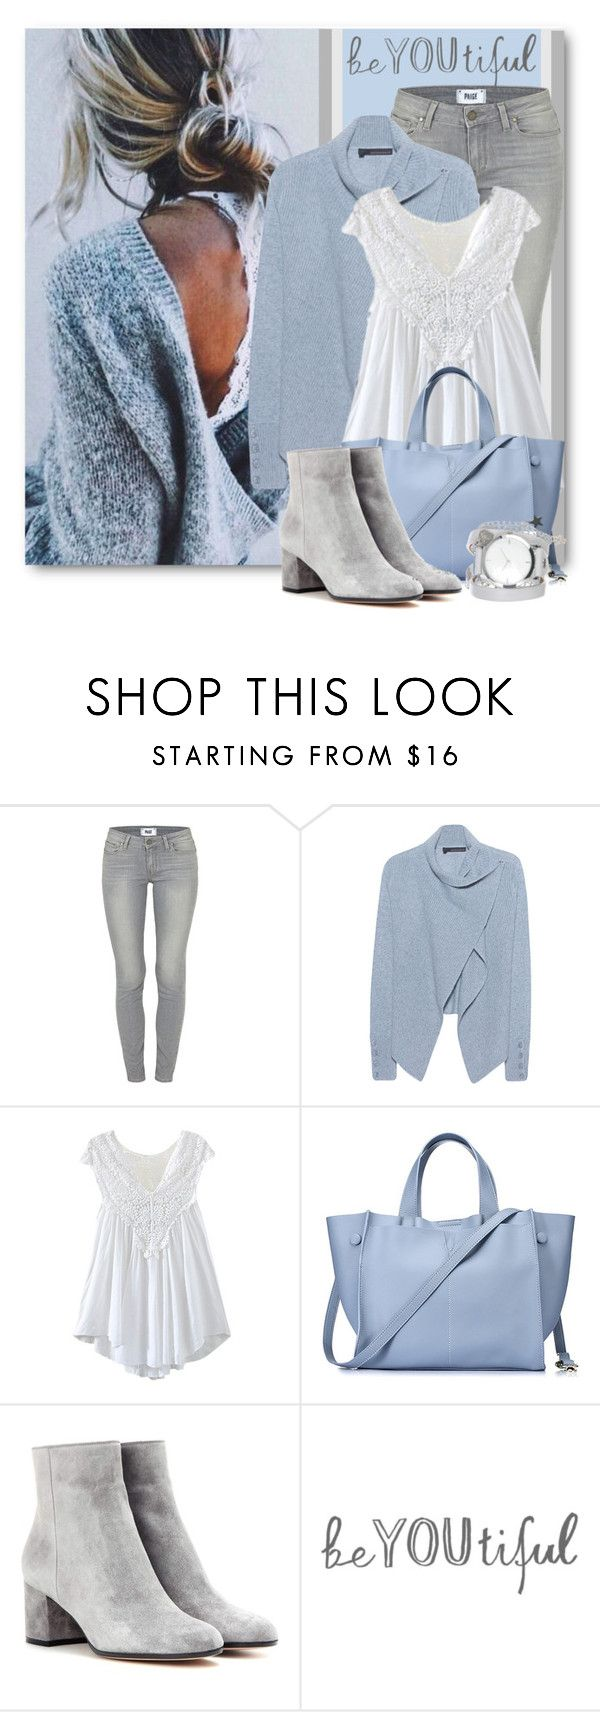 """""""Casual Cashmere & Lace"""" by brendariley-1 ❤ liked on Polyvore featuring Paige Denim, 360 Sweater, WithChic, Gianvito Rossi and ZALORA"""